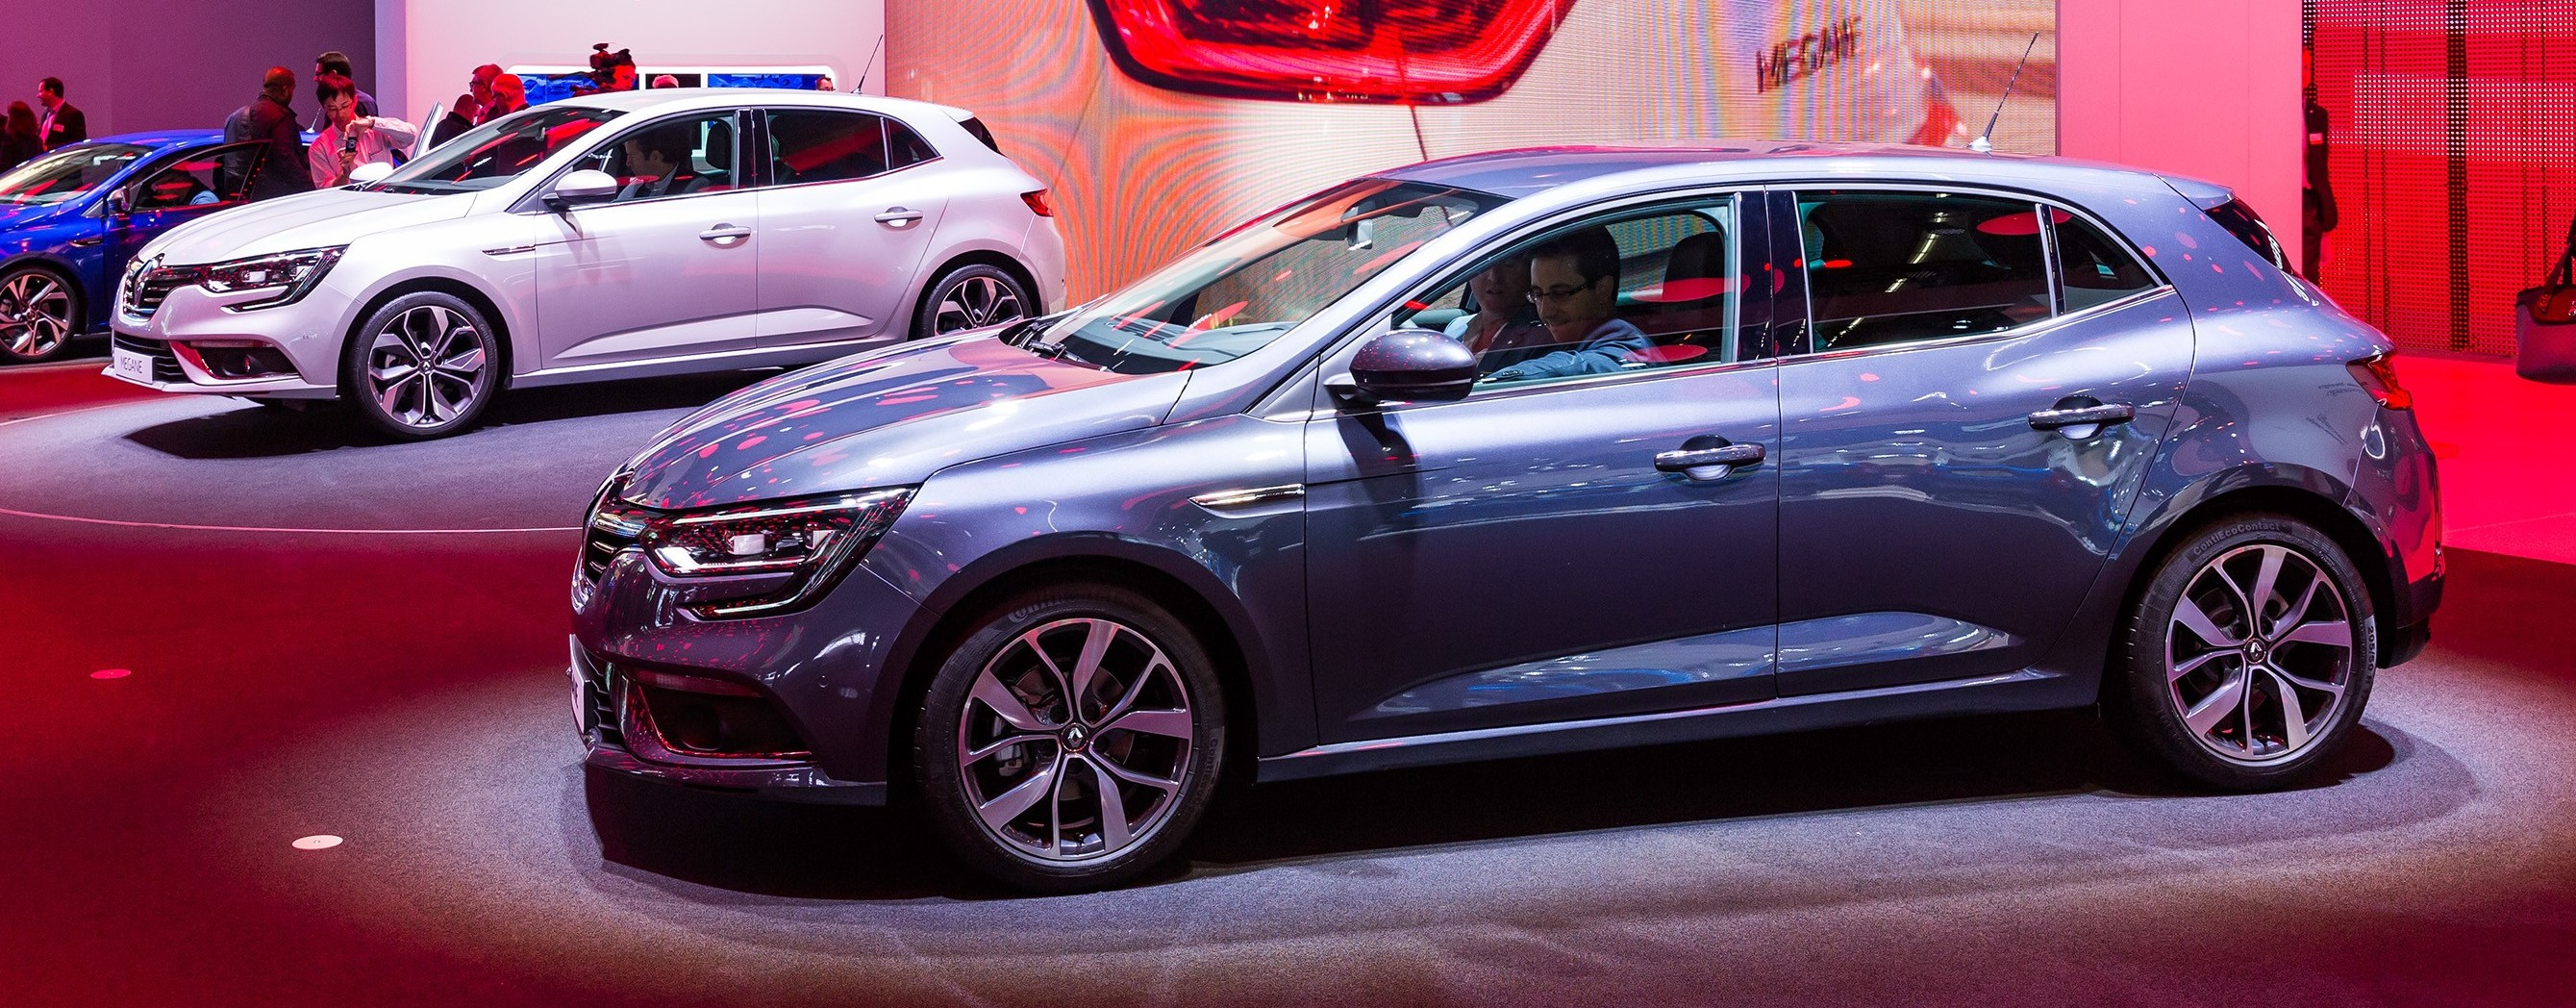 renault megane iv debuts at frankfurt 2015 show. Black Bedroom Furniture Sets. Home Design Ideas